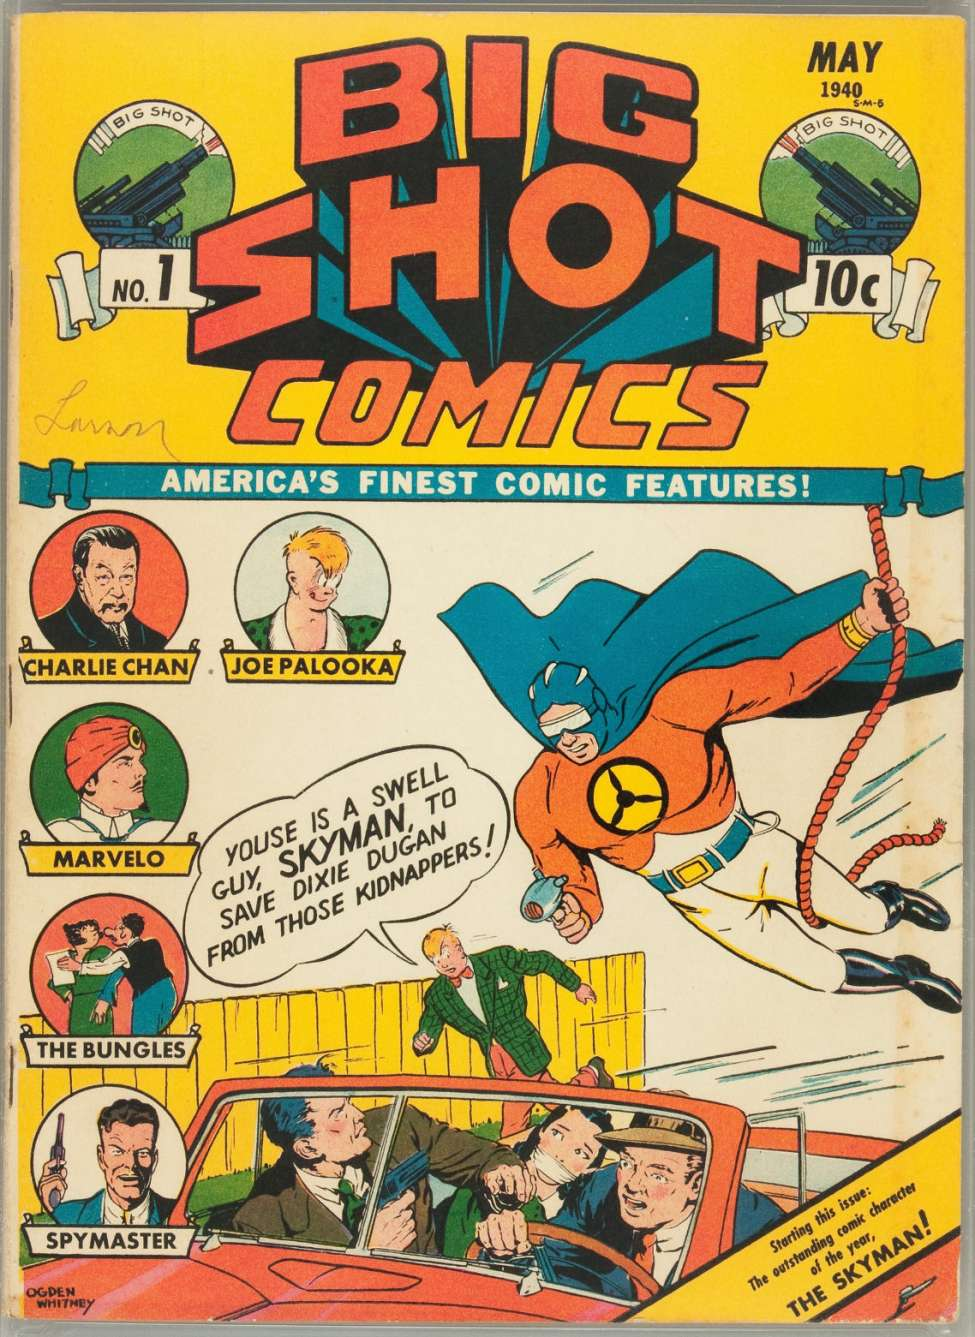 Comic Book Cover For Big Shot Comics #1 - Version 1